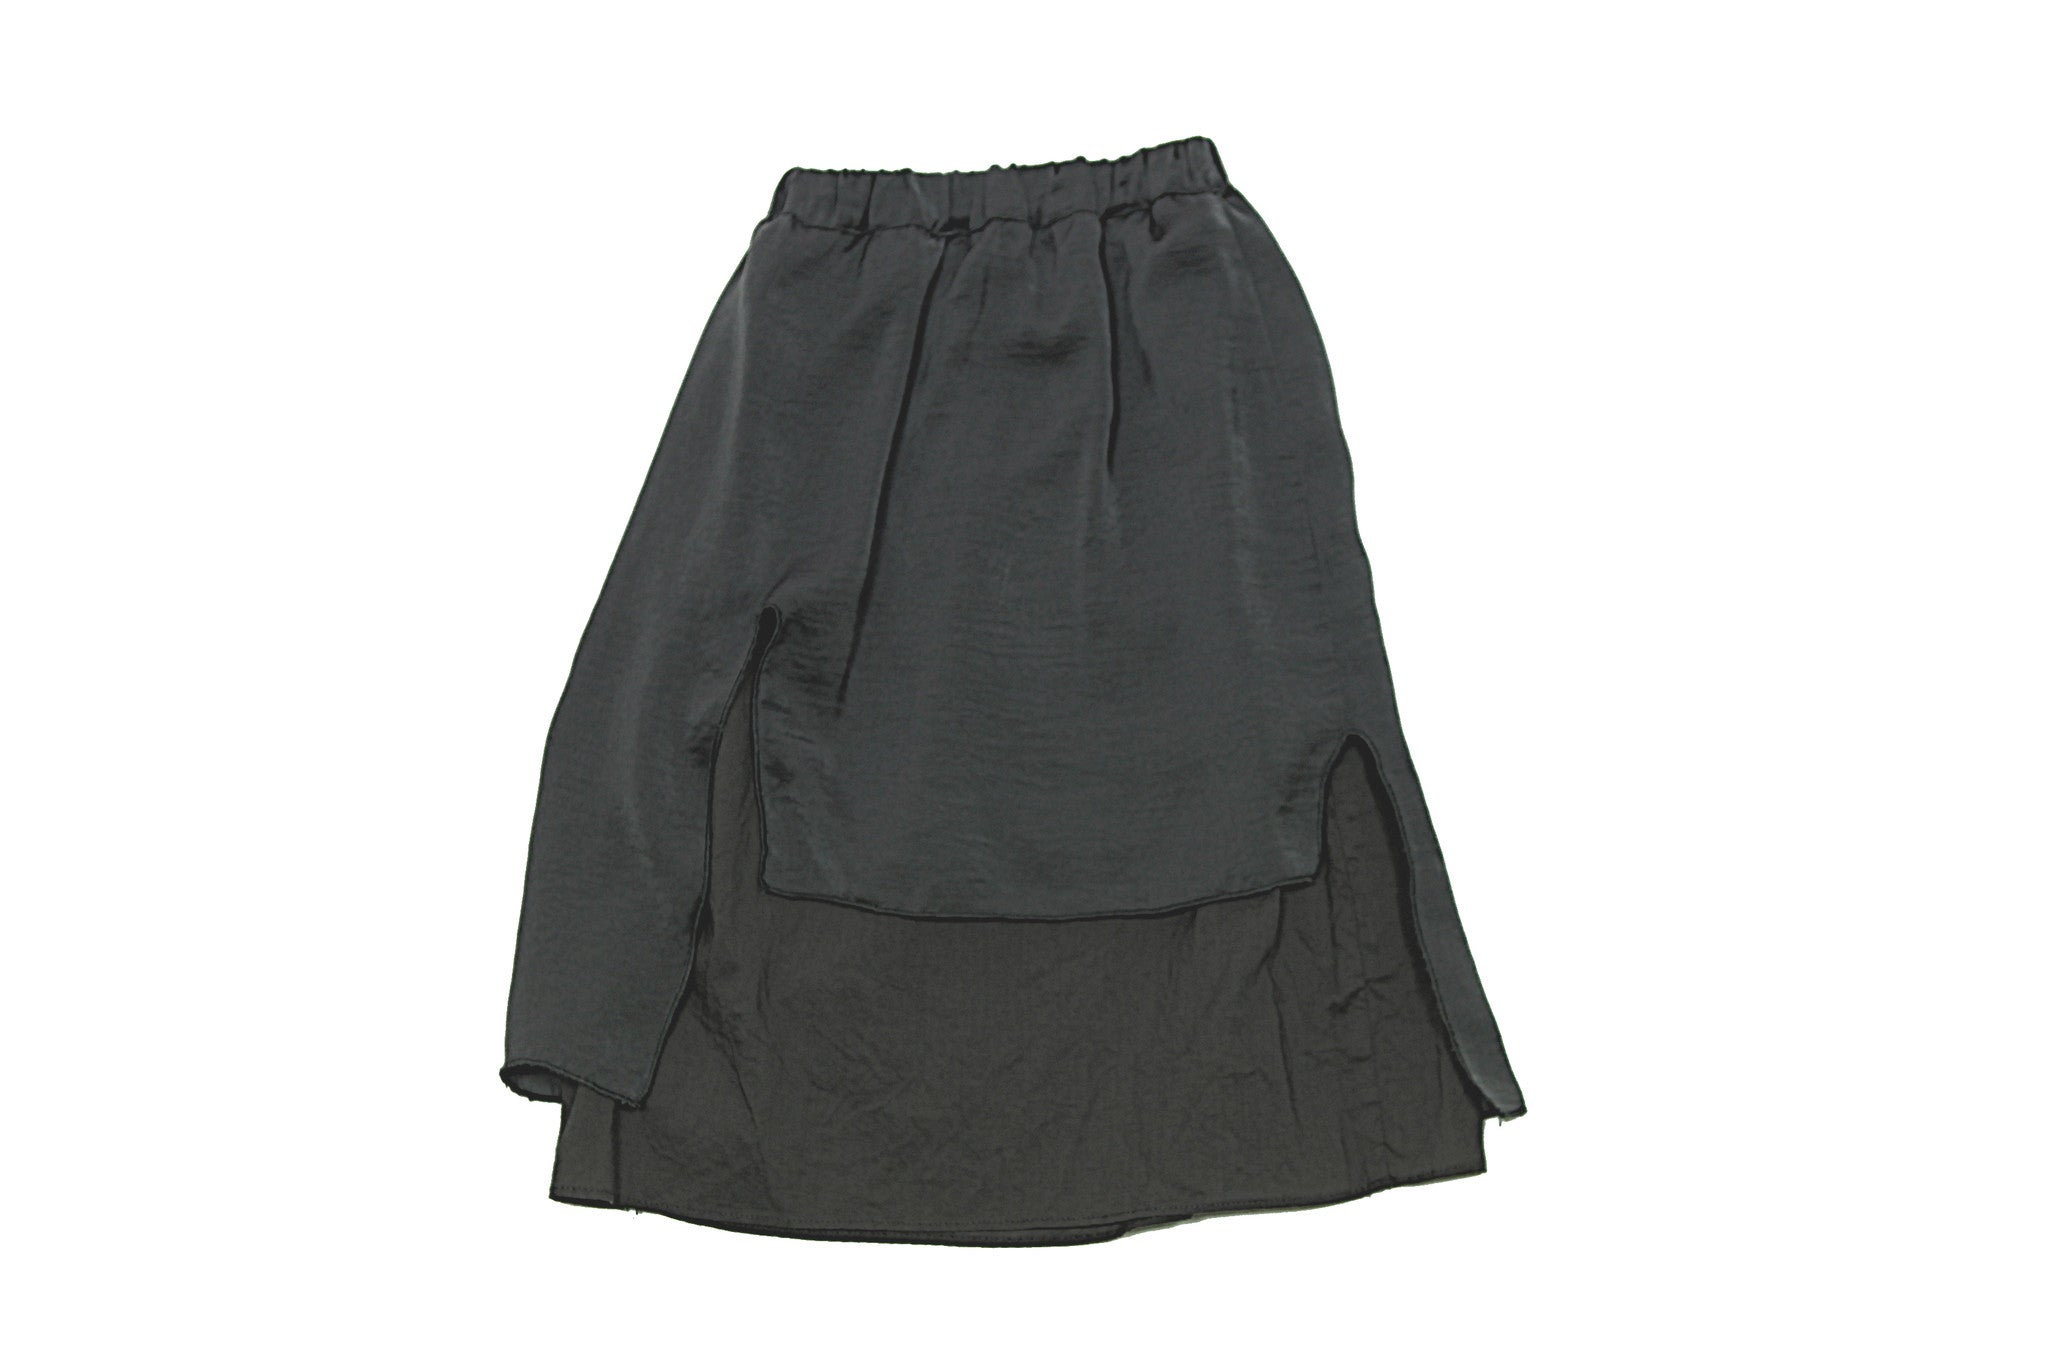 Tambere Charcoal Layered Skirt